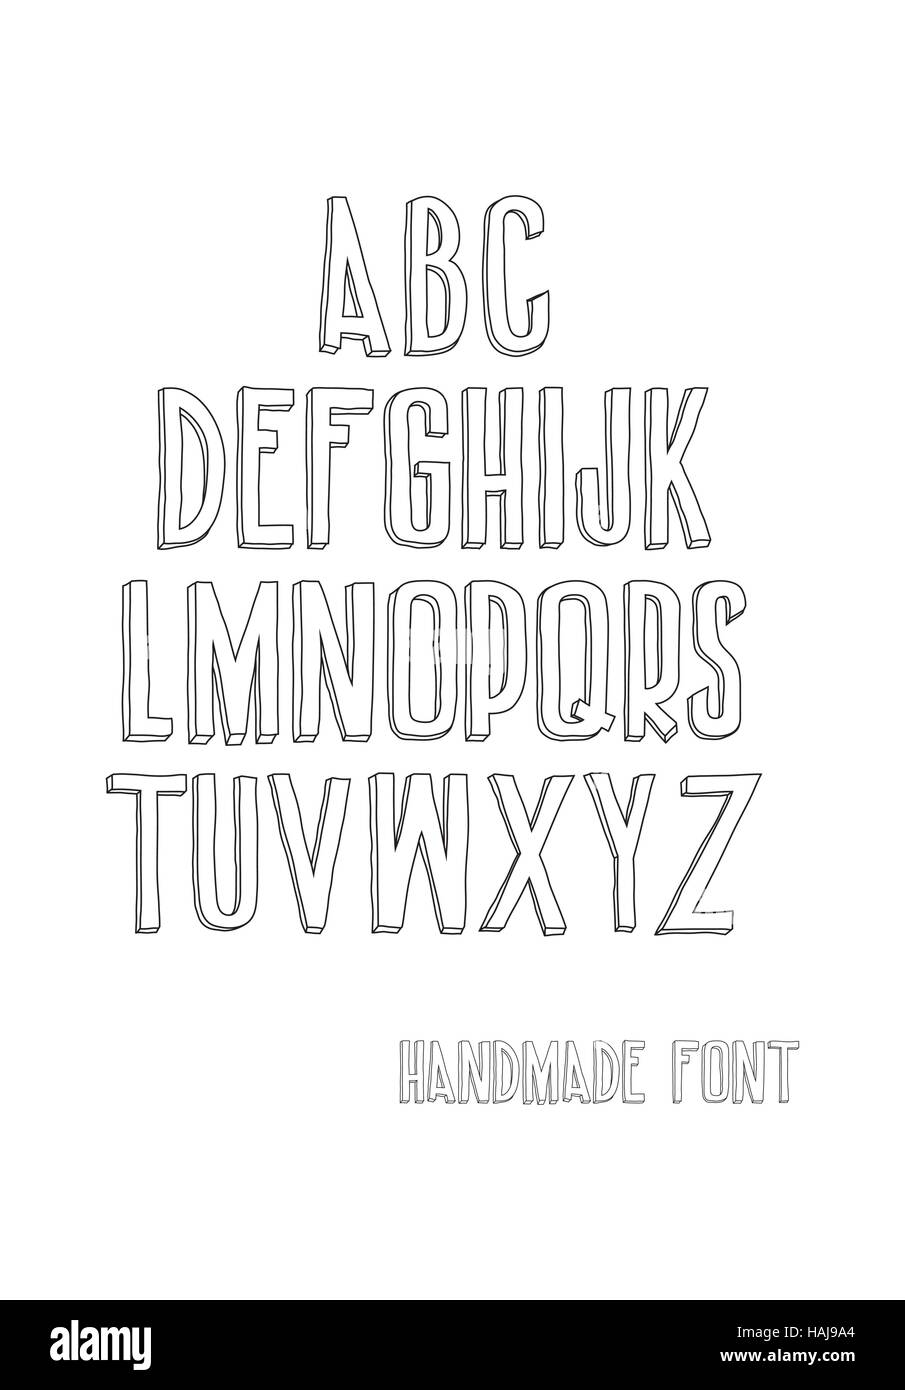 Letters of the alphabet written with a hand - Stock Image